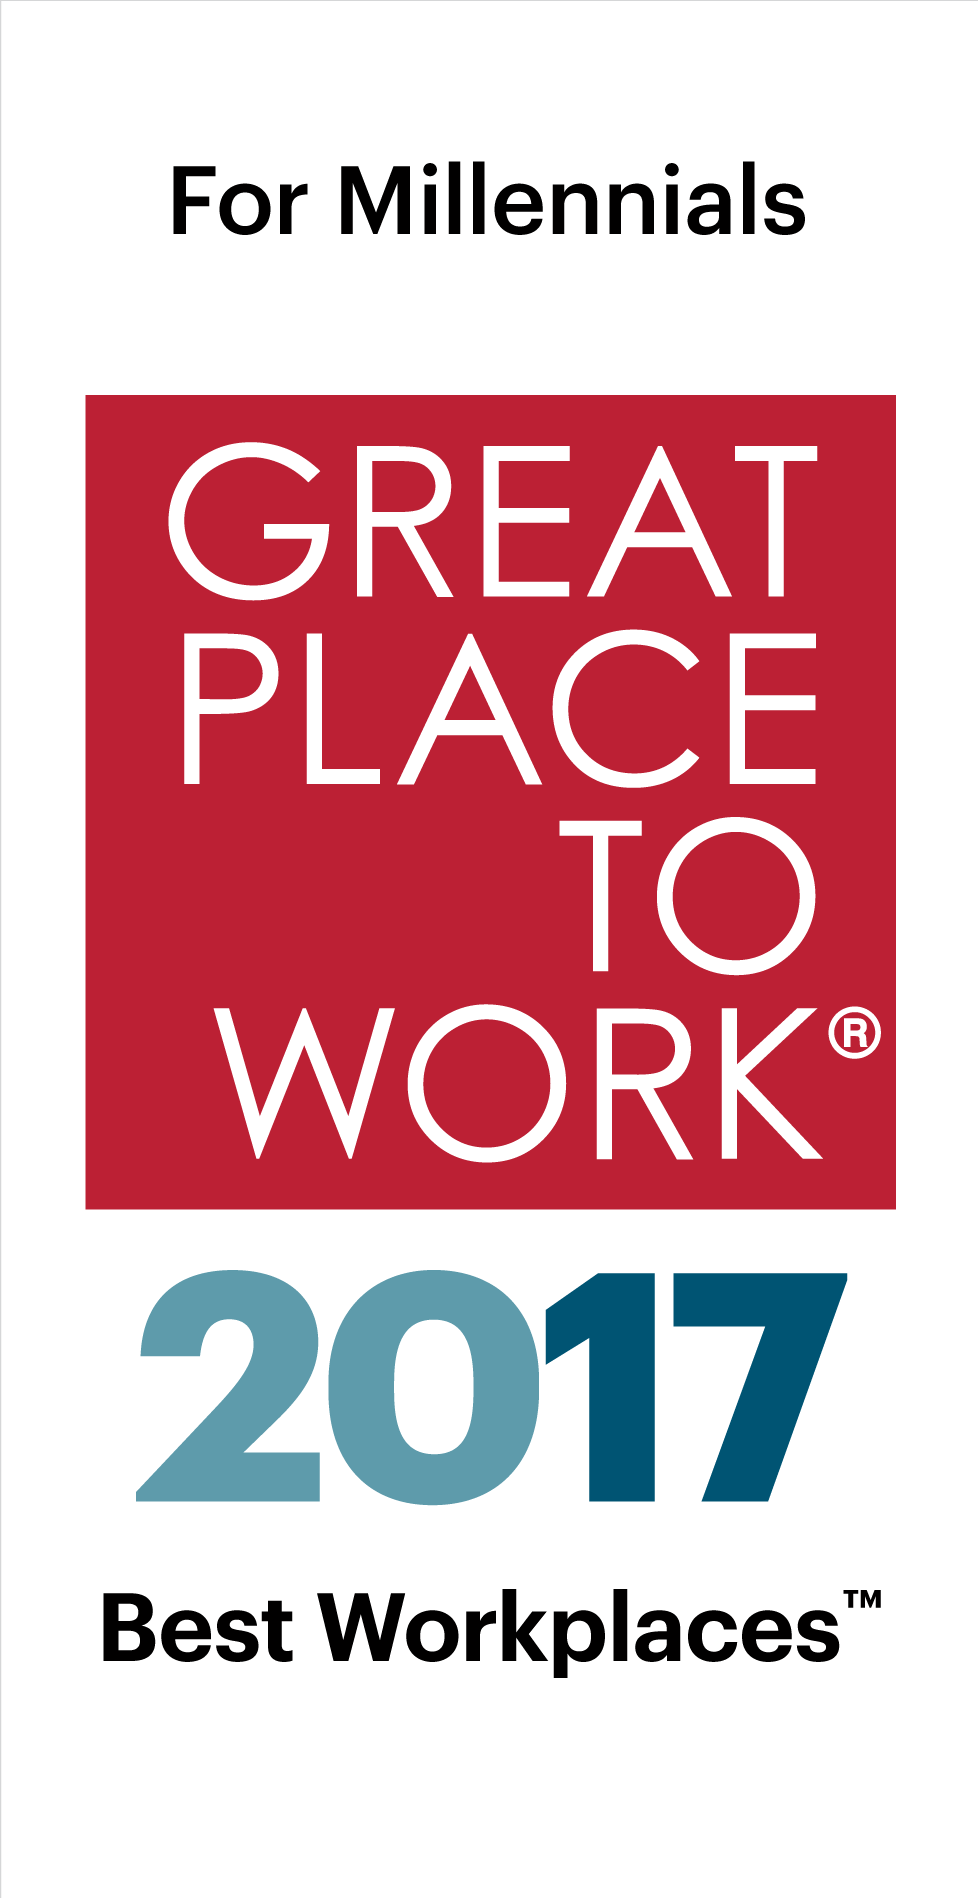 FORTUNE's 100 Best Workplaces for Millennials list